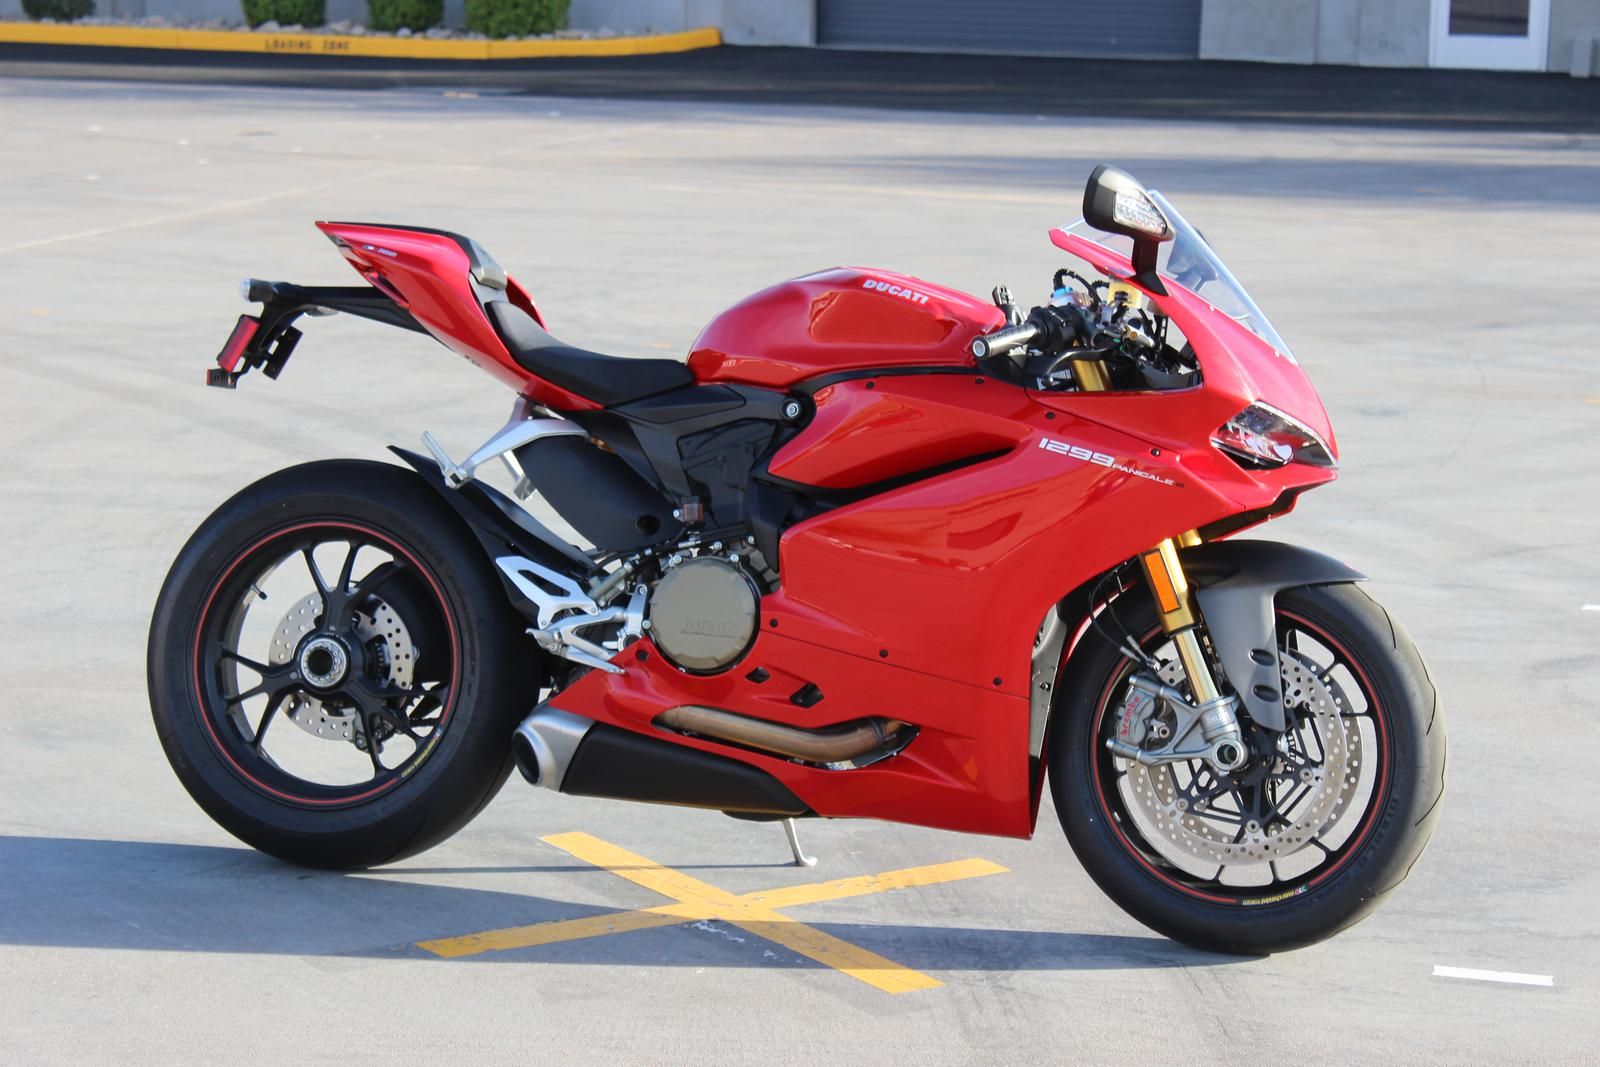 2017 ducati 1299 panigale s for sale in scottsdale, az | go az